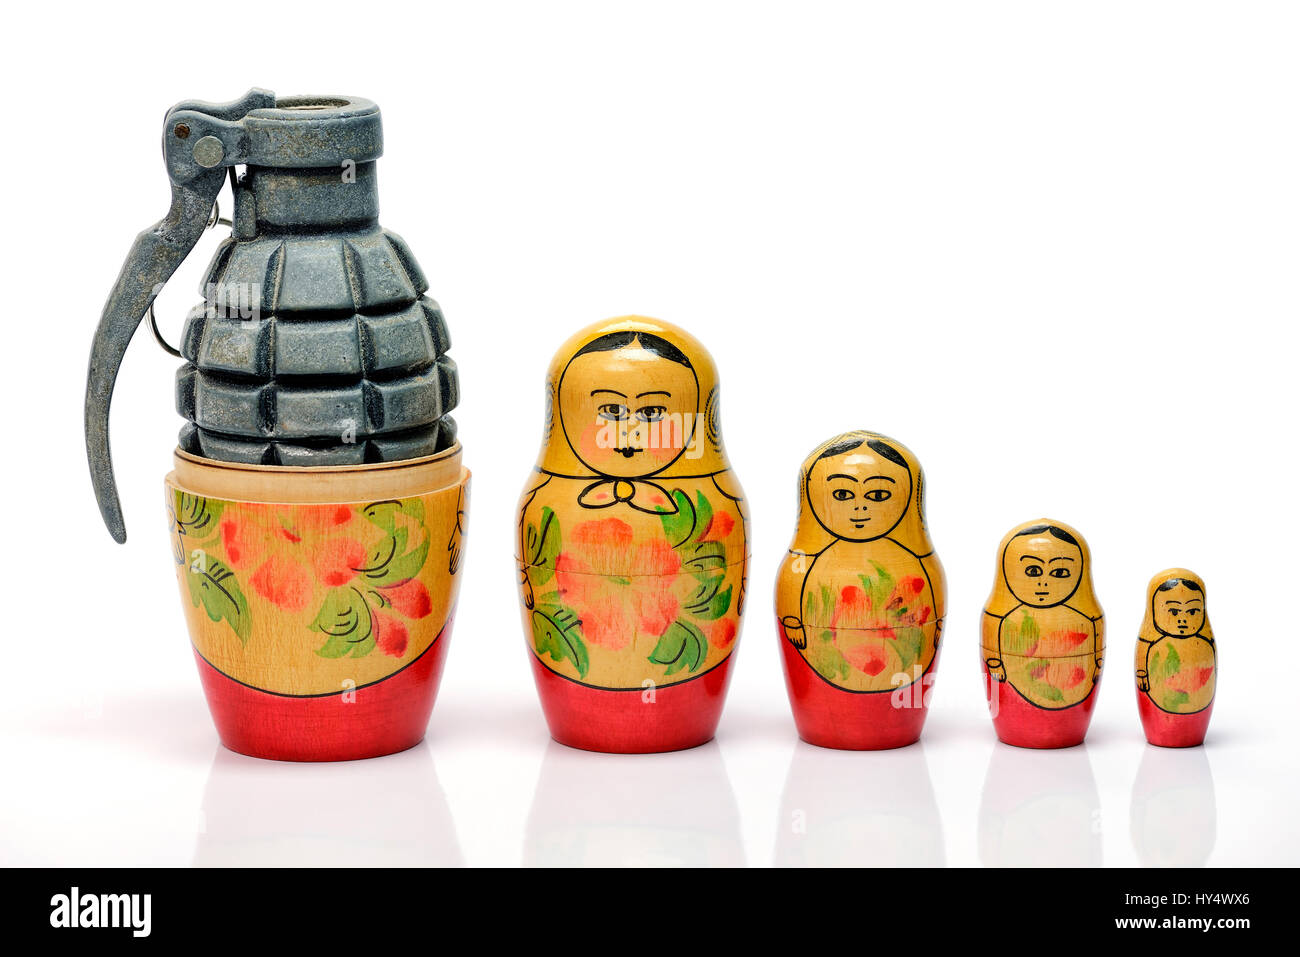 Russian Matroschka with grenade, the Russian military, Russische Matroschka mit Handgranate, russisches Militaer Stock Photo